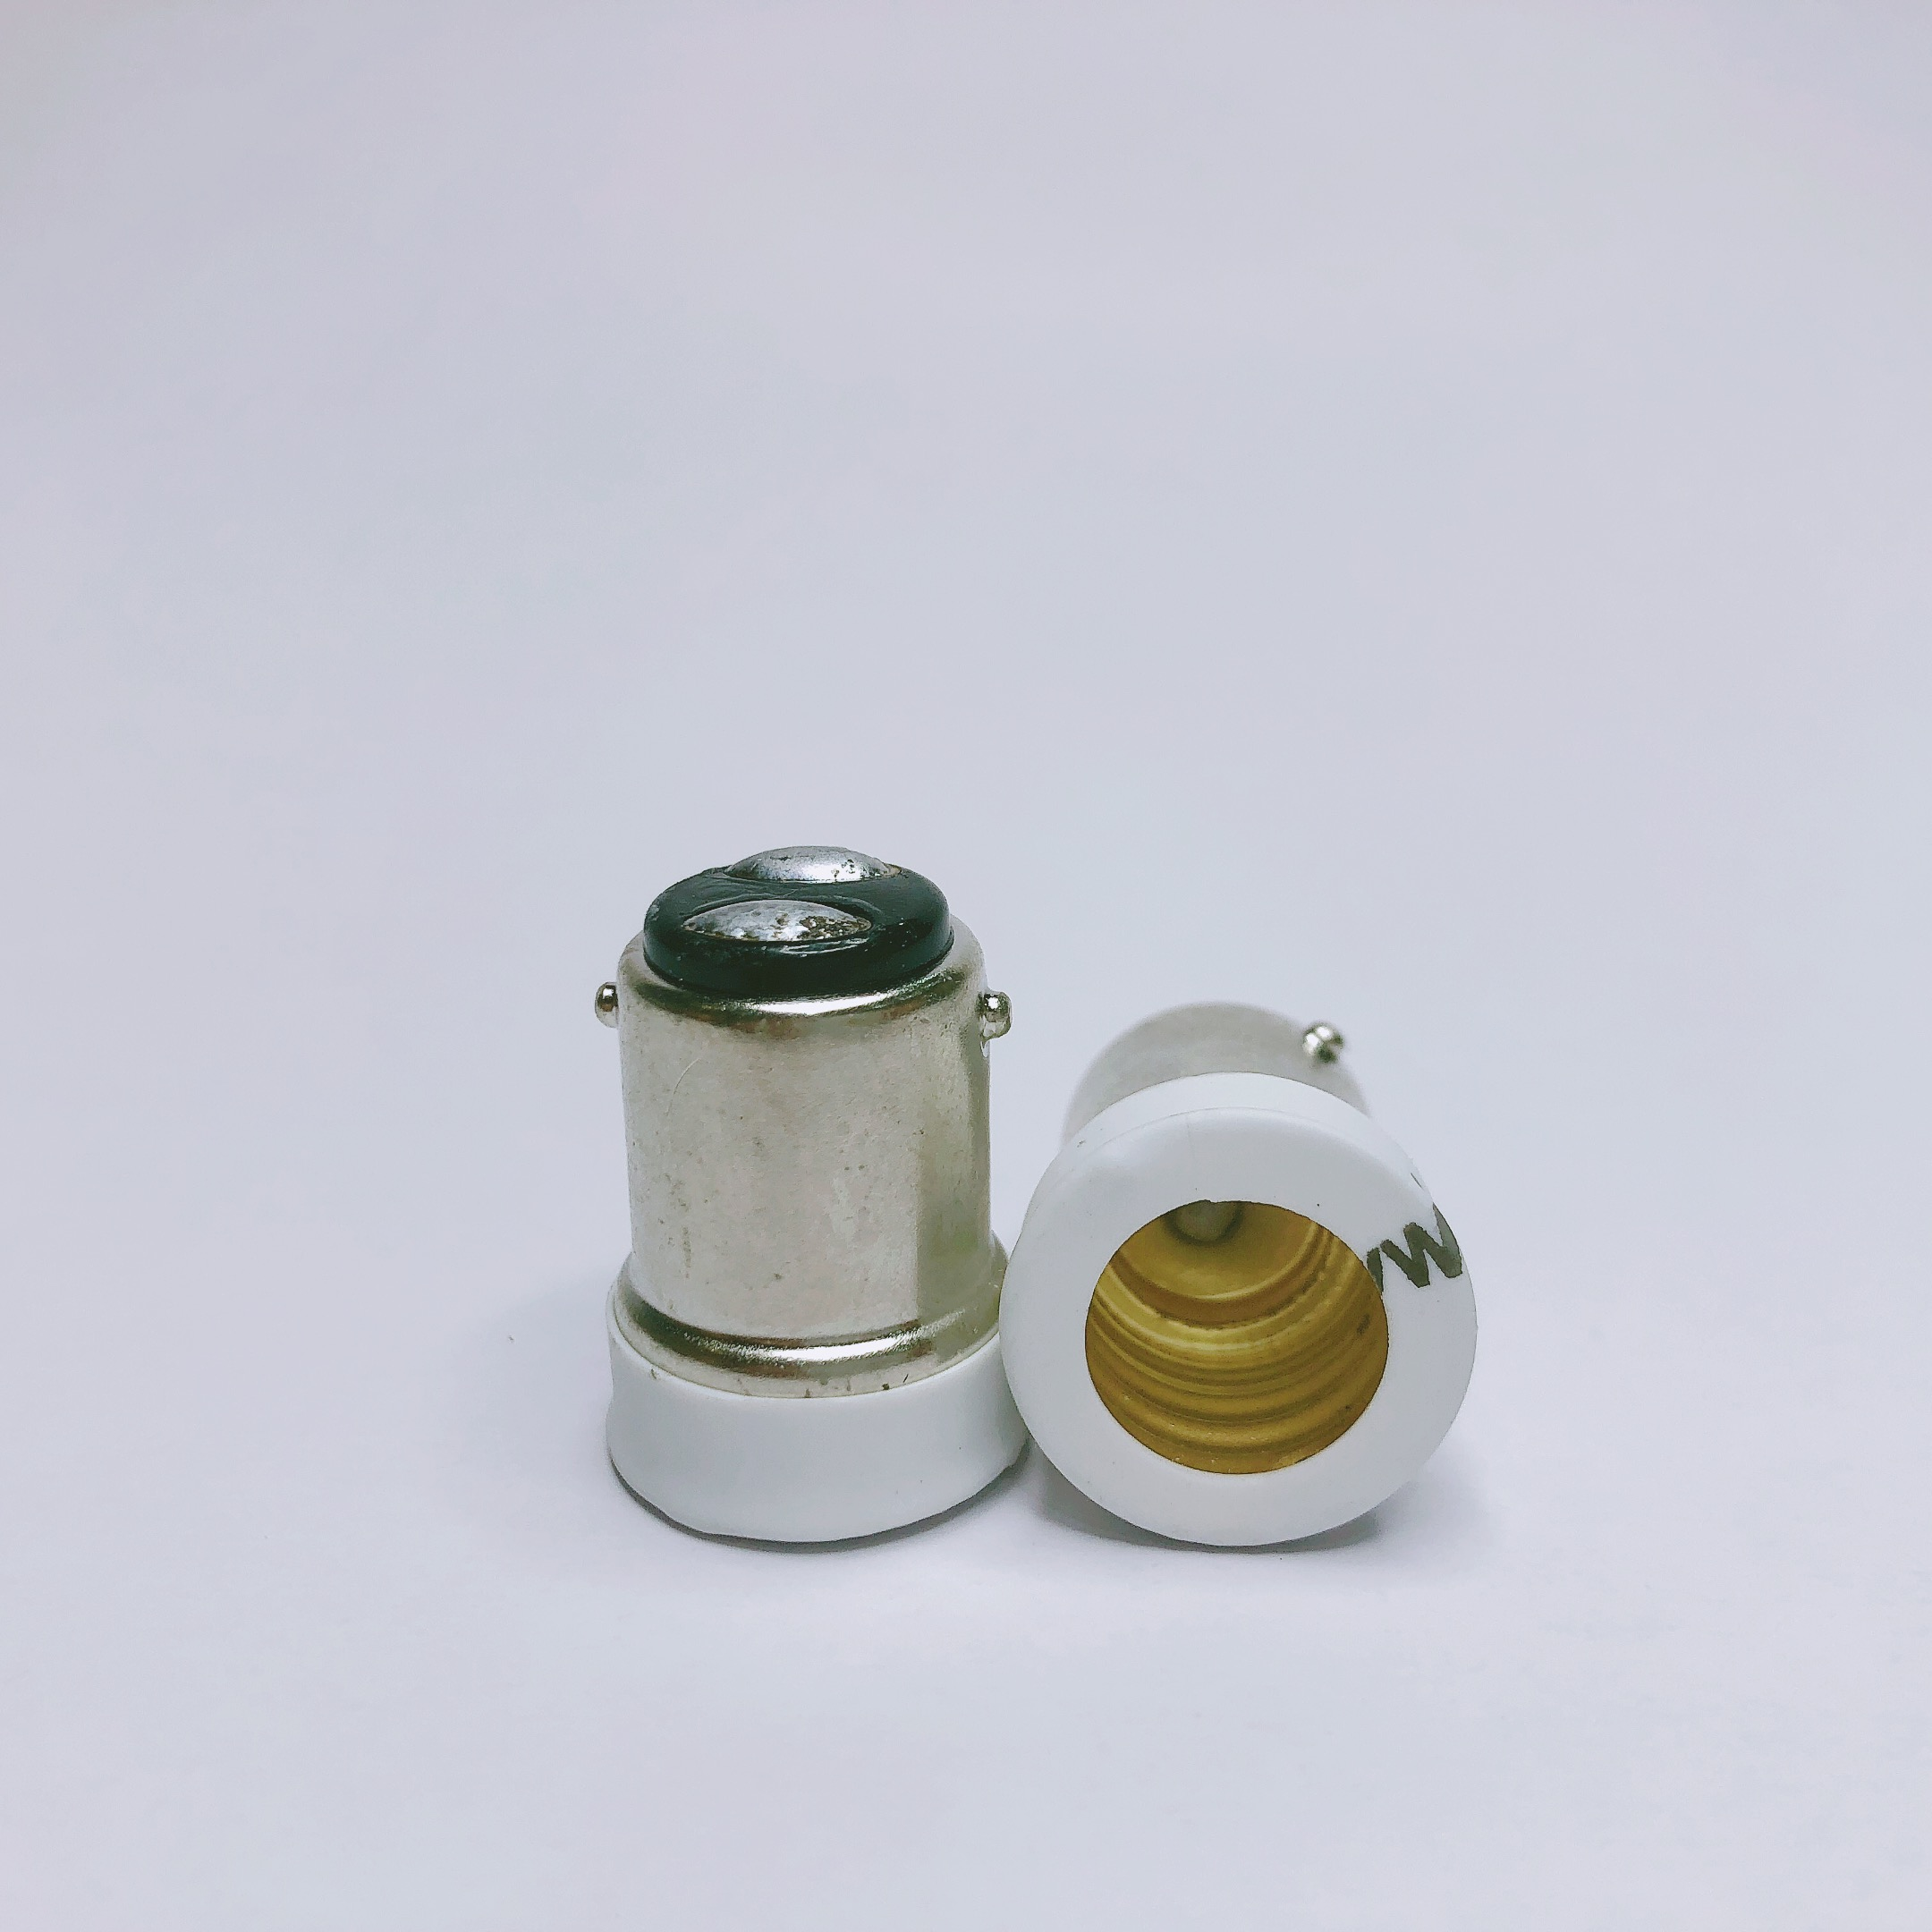 B15 Male To E14 Female Lamp Bulb Socket Light Extender Adaptor Converter Holder Drop Ship Support